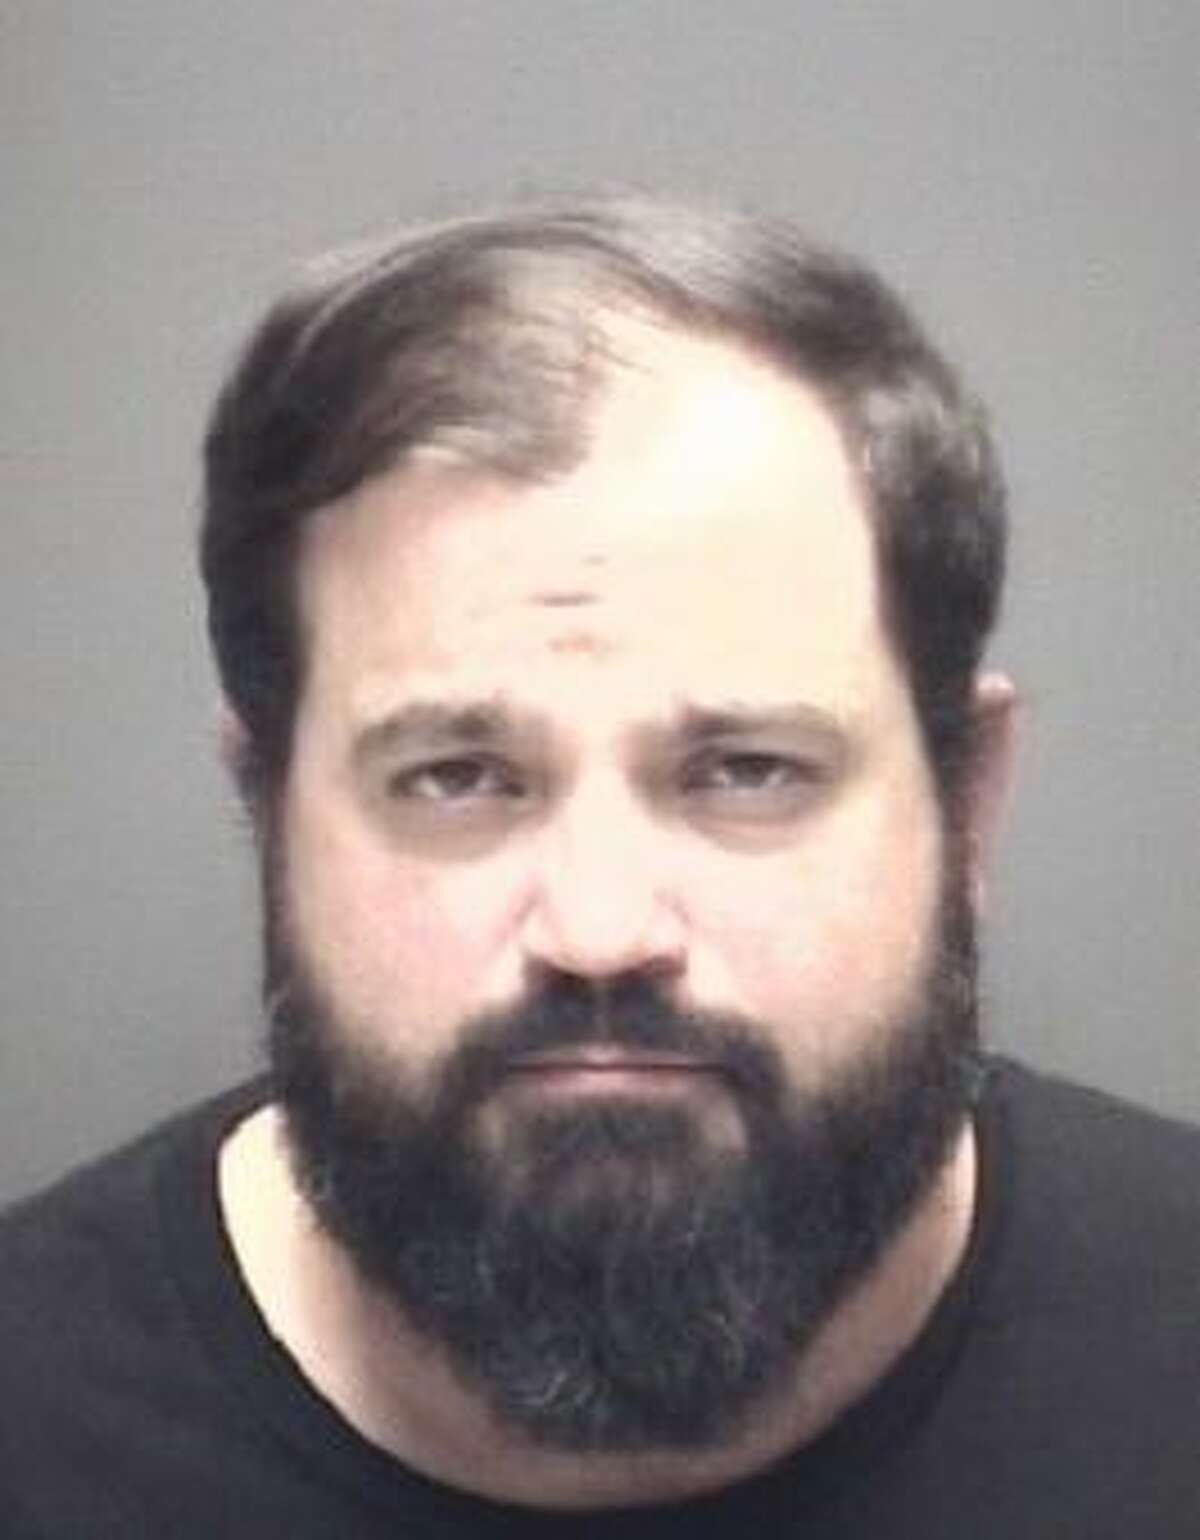 Justin Popovich was arrested three times and charged with violating bond and stalking during April 2020.